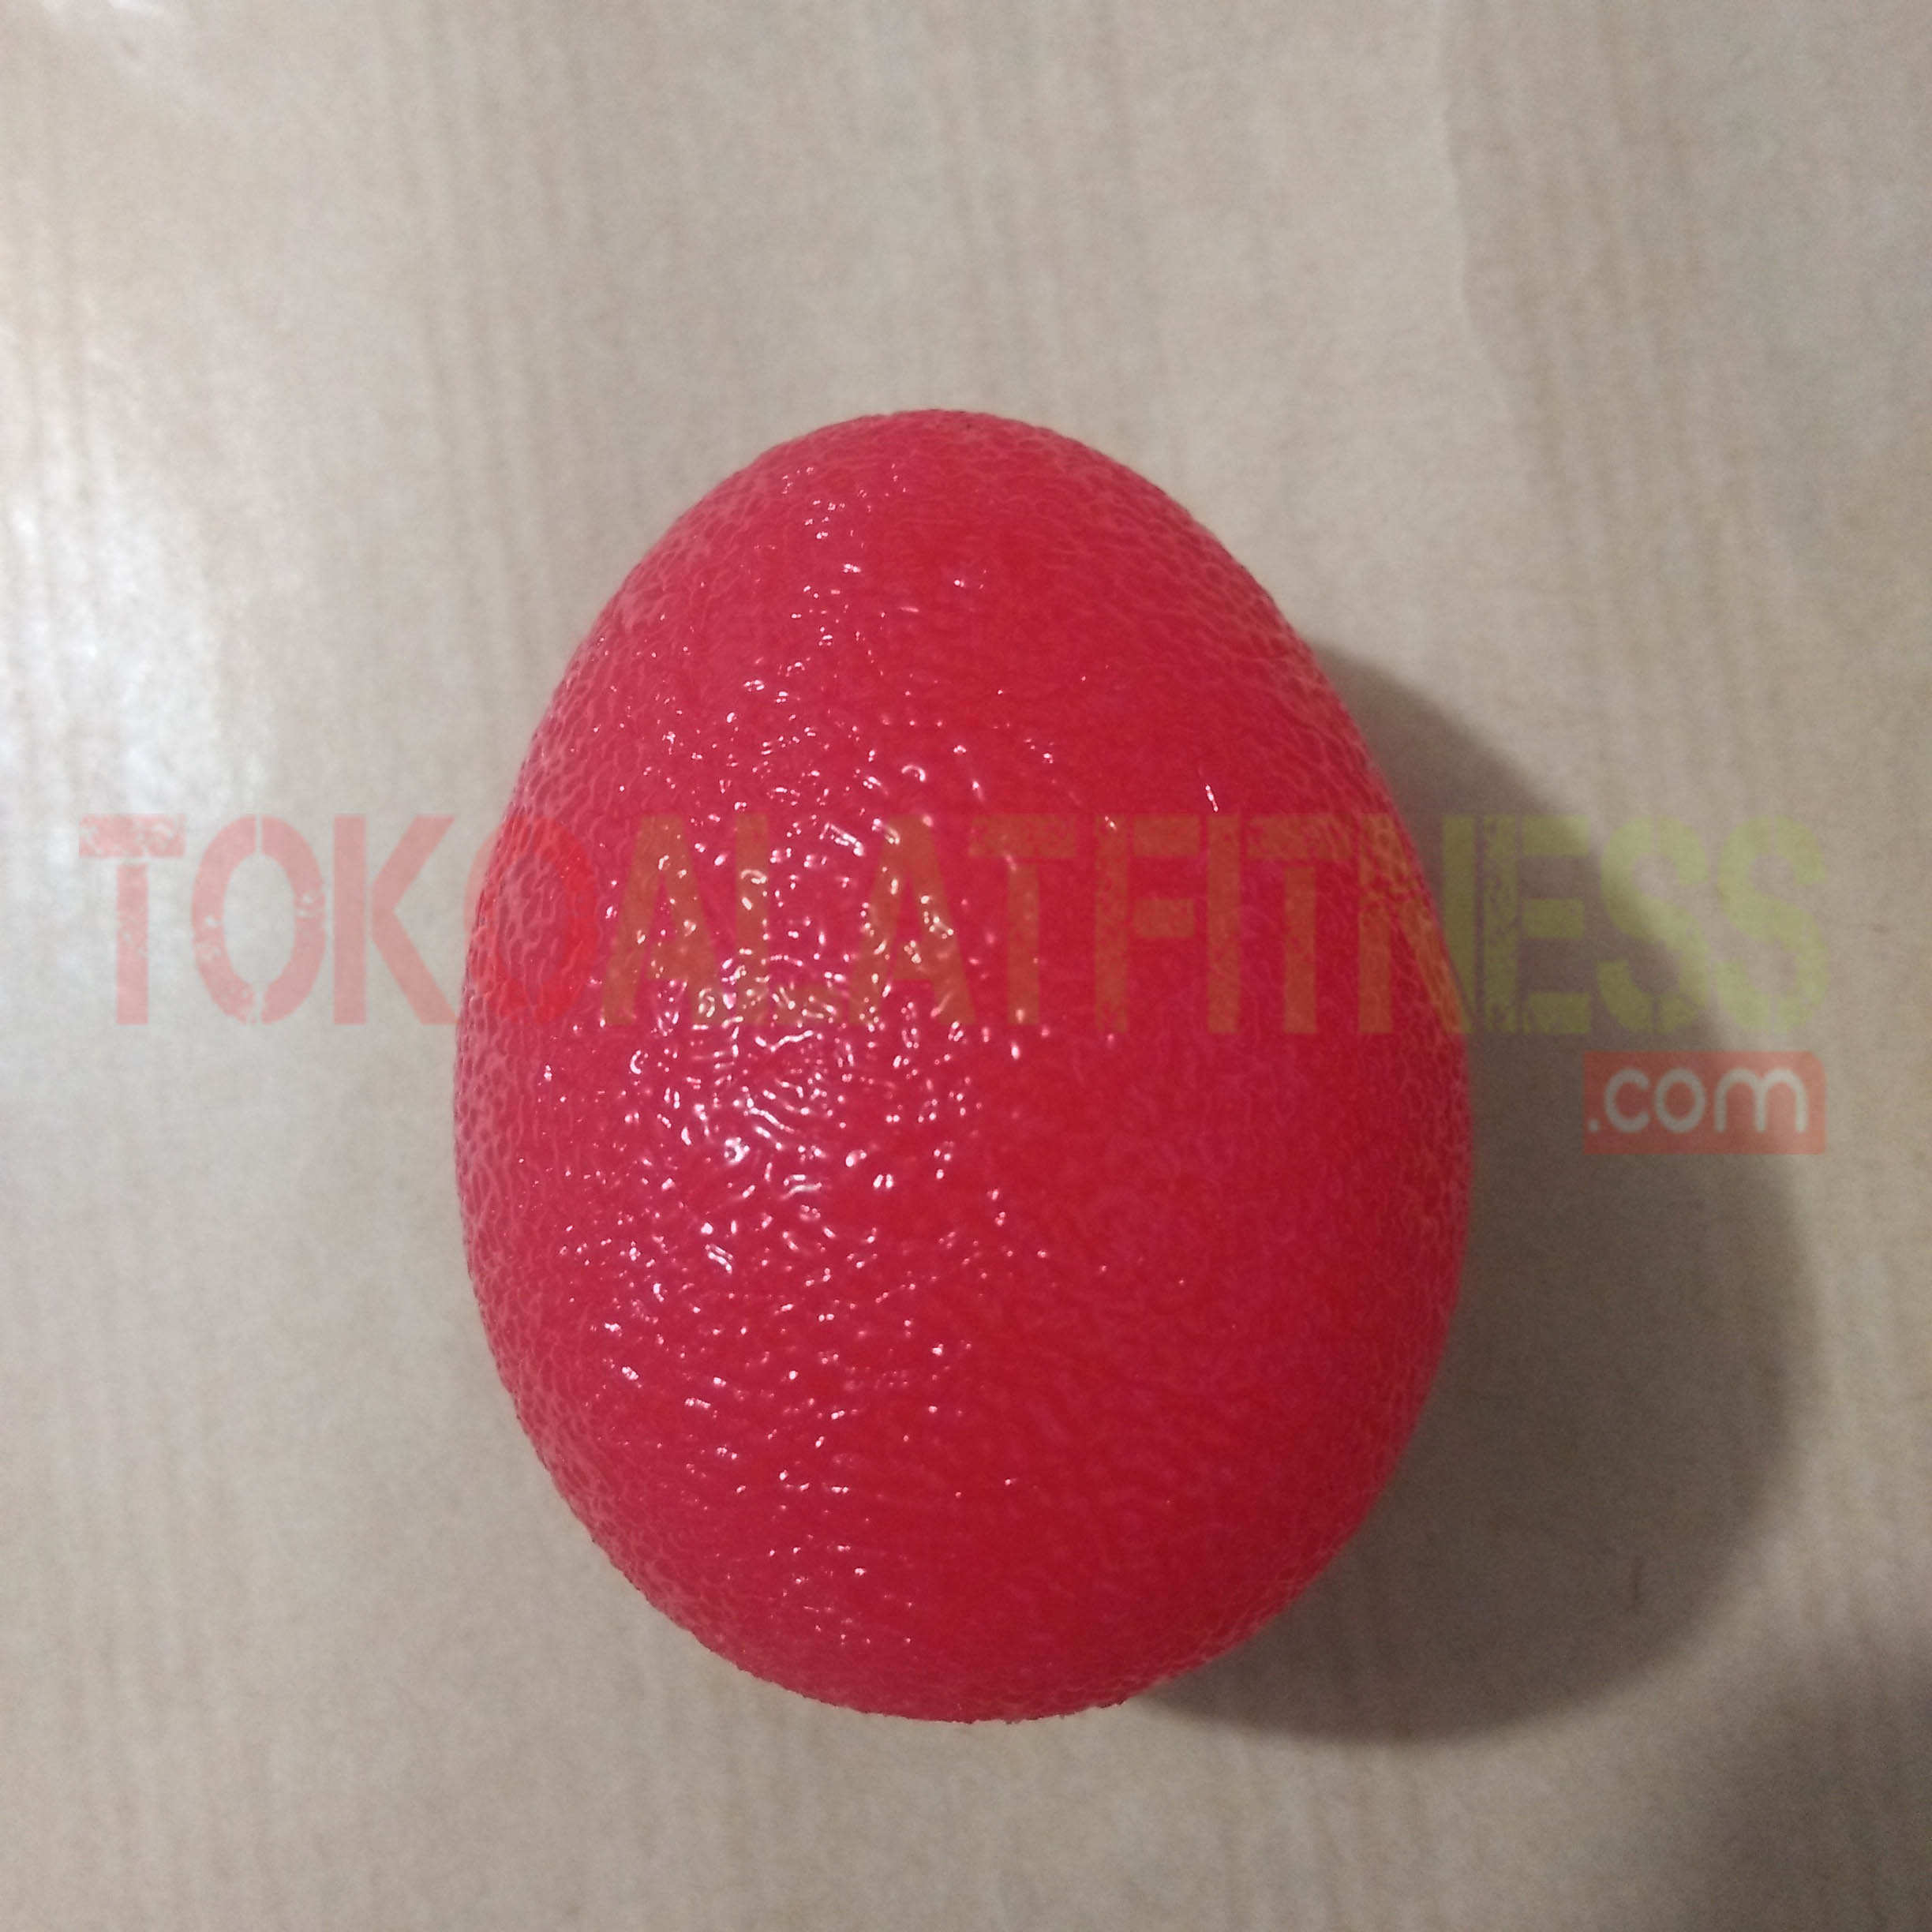 FA HAND GRIP POWER BALL MERAH WTM - Hand Grip Power Ball Red Body Gym